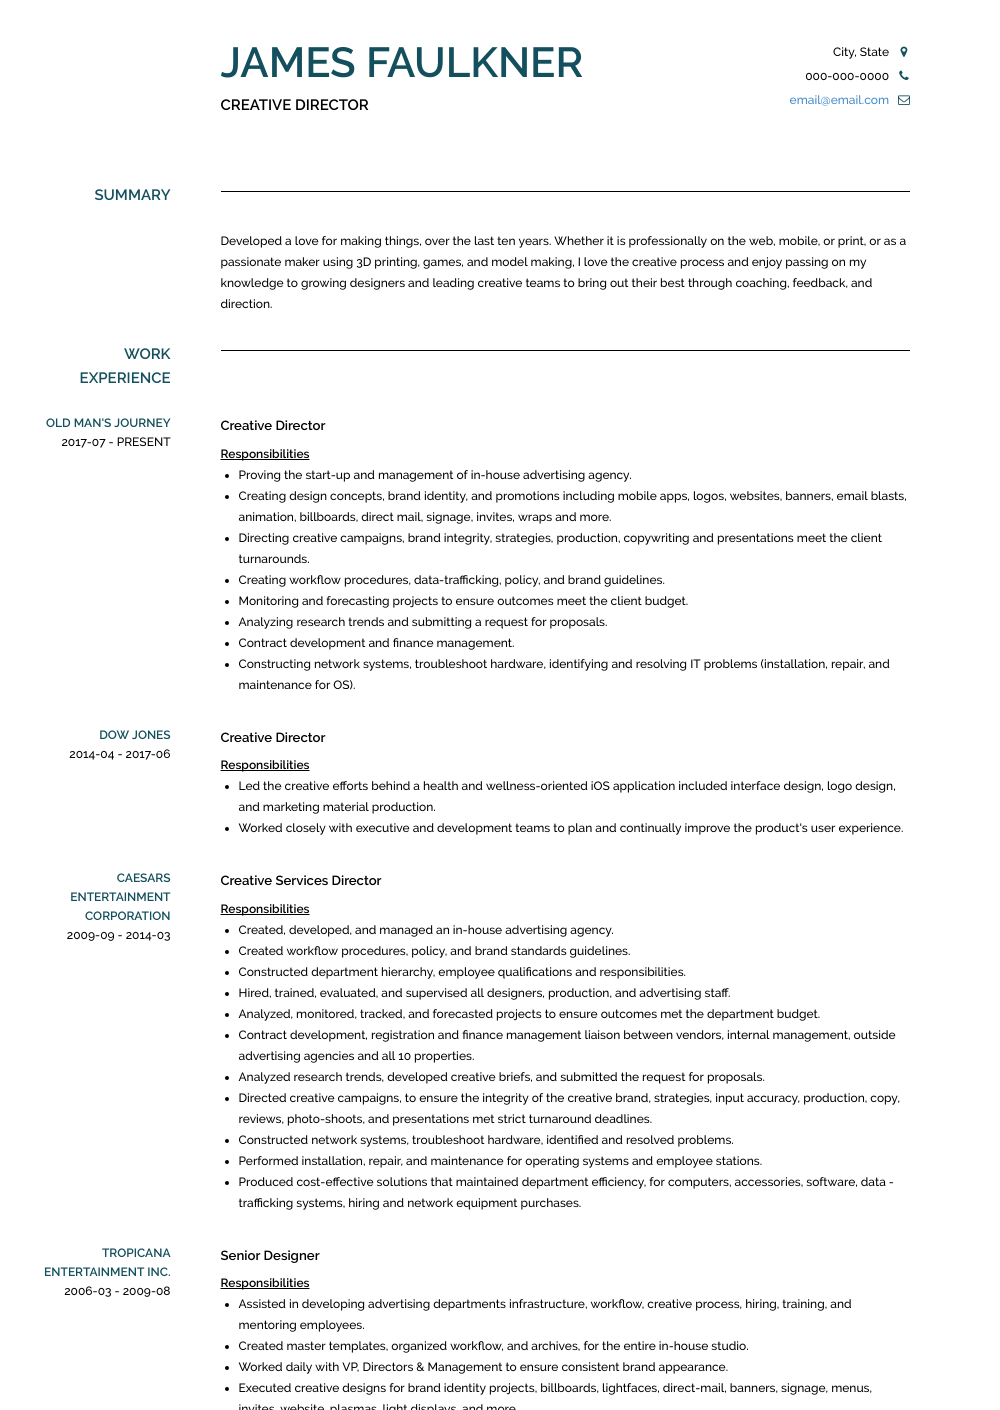 Creative Director  Resume Samples and Templates   VisualCV